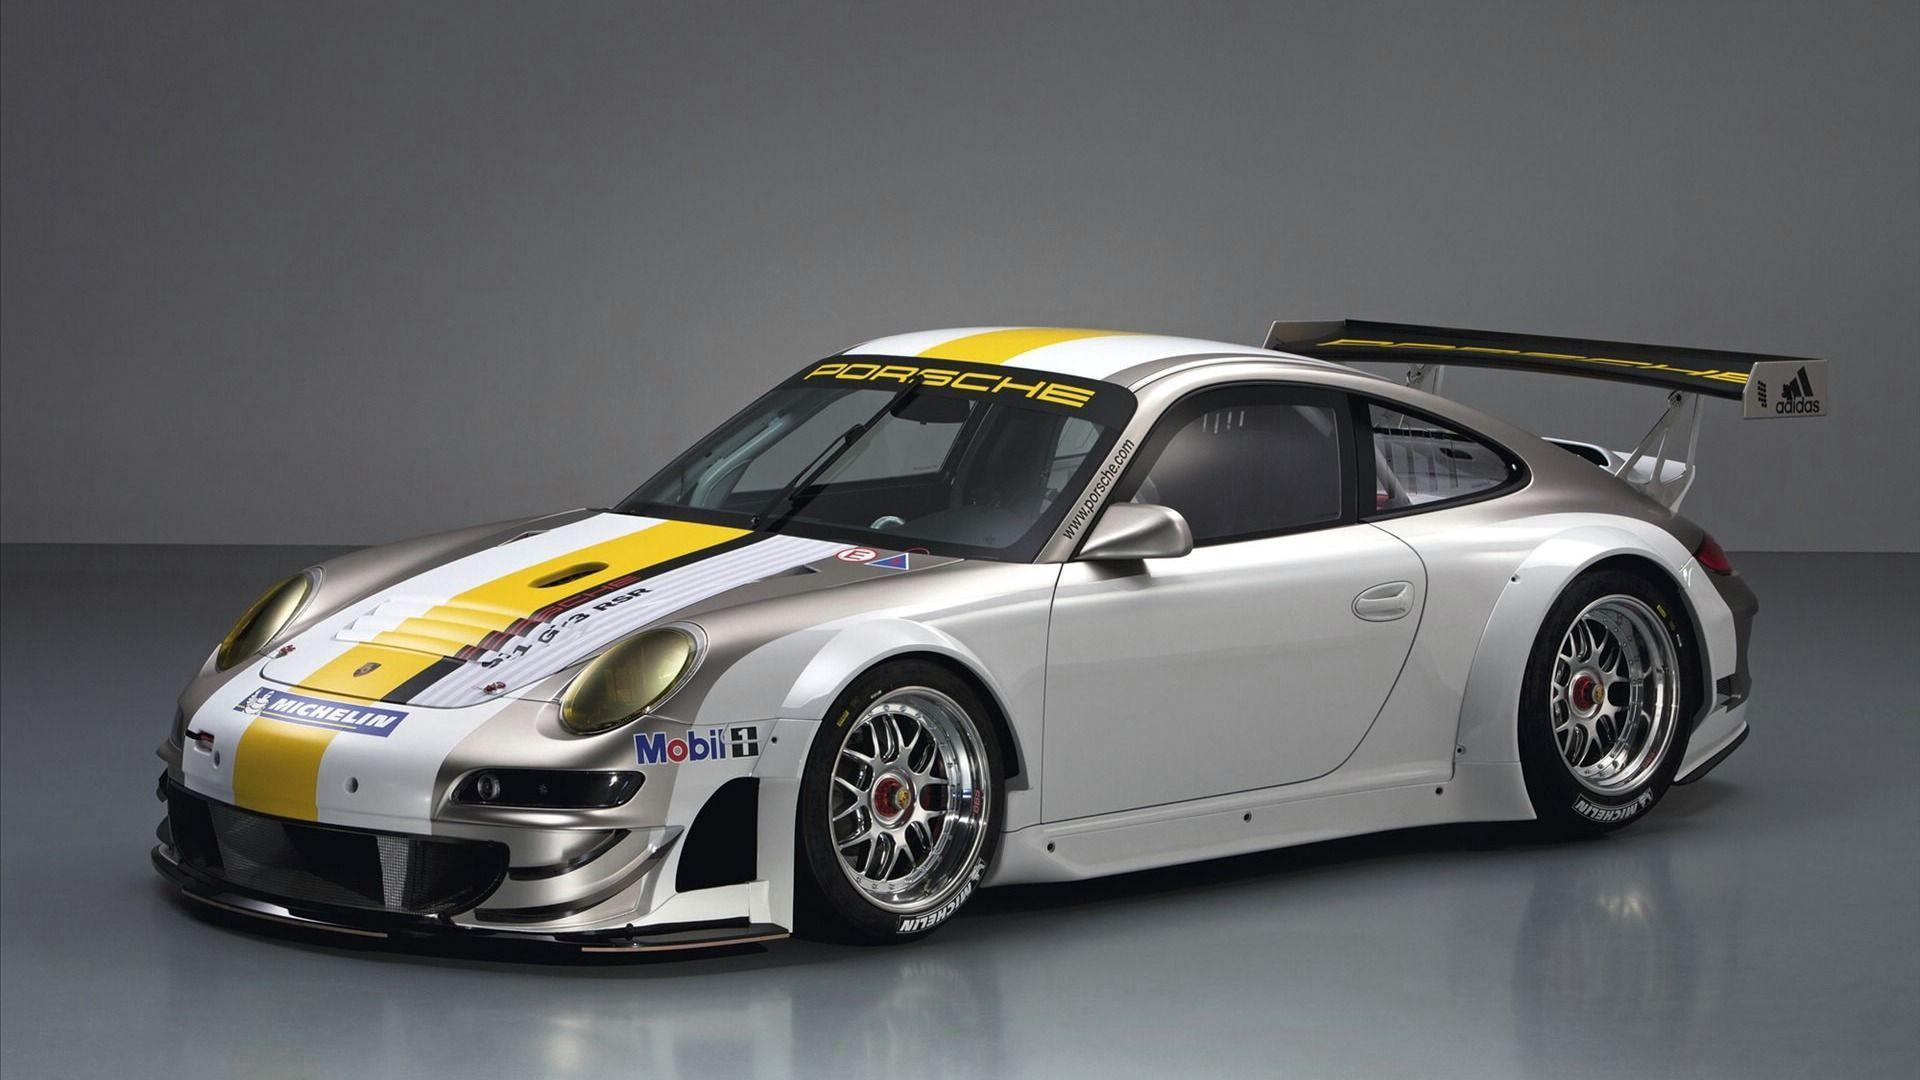 Image For > Porsche 911 Gt3 Rs 4.0 Wallpapers